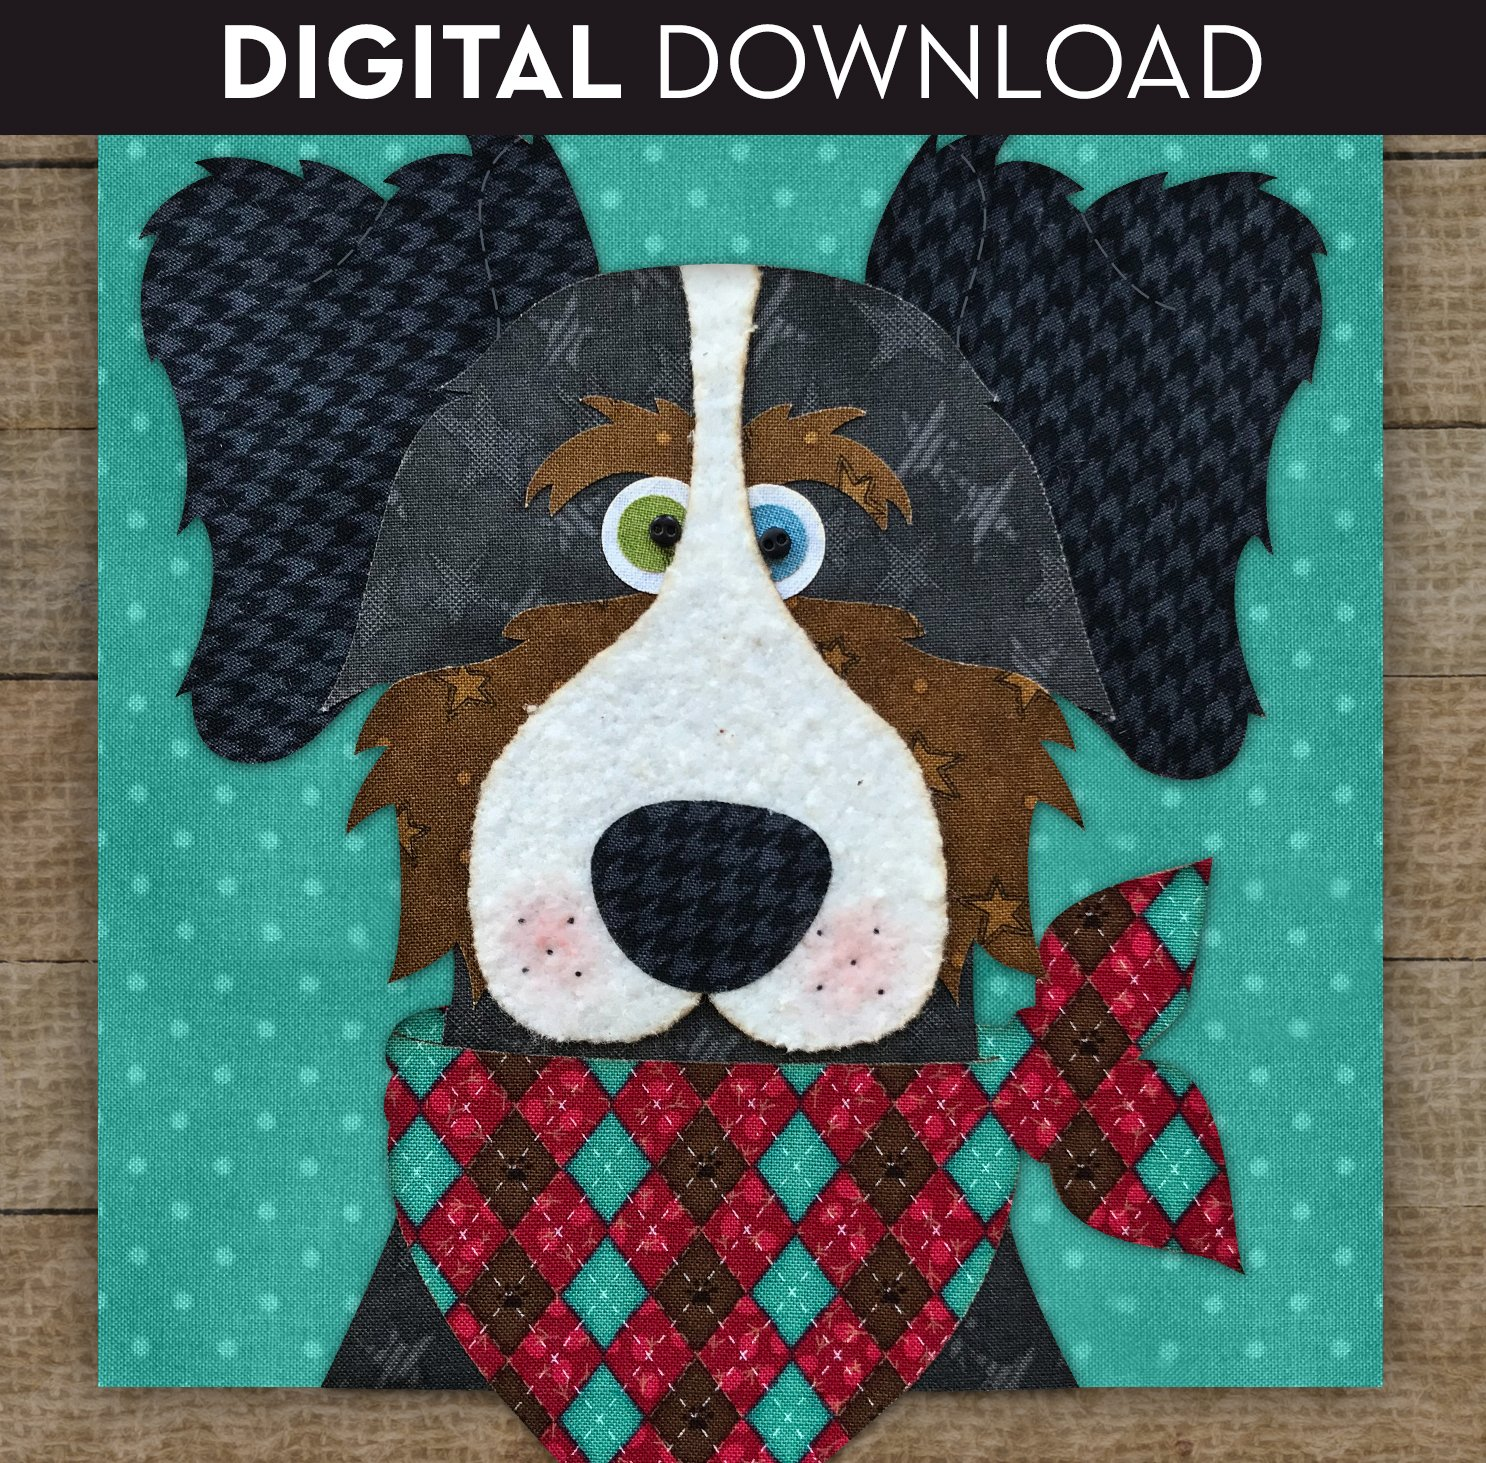 Australian Shepherd - Download